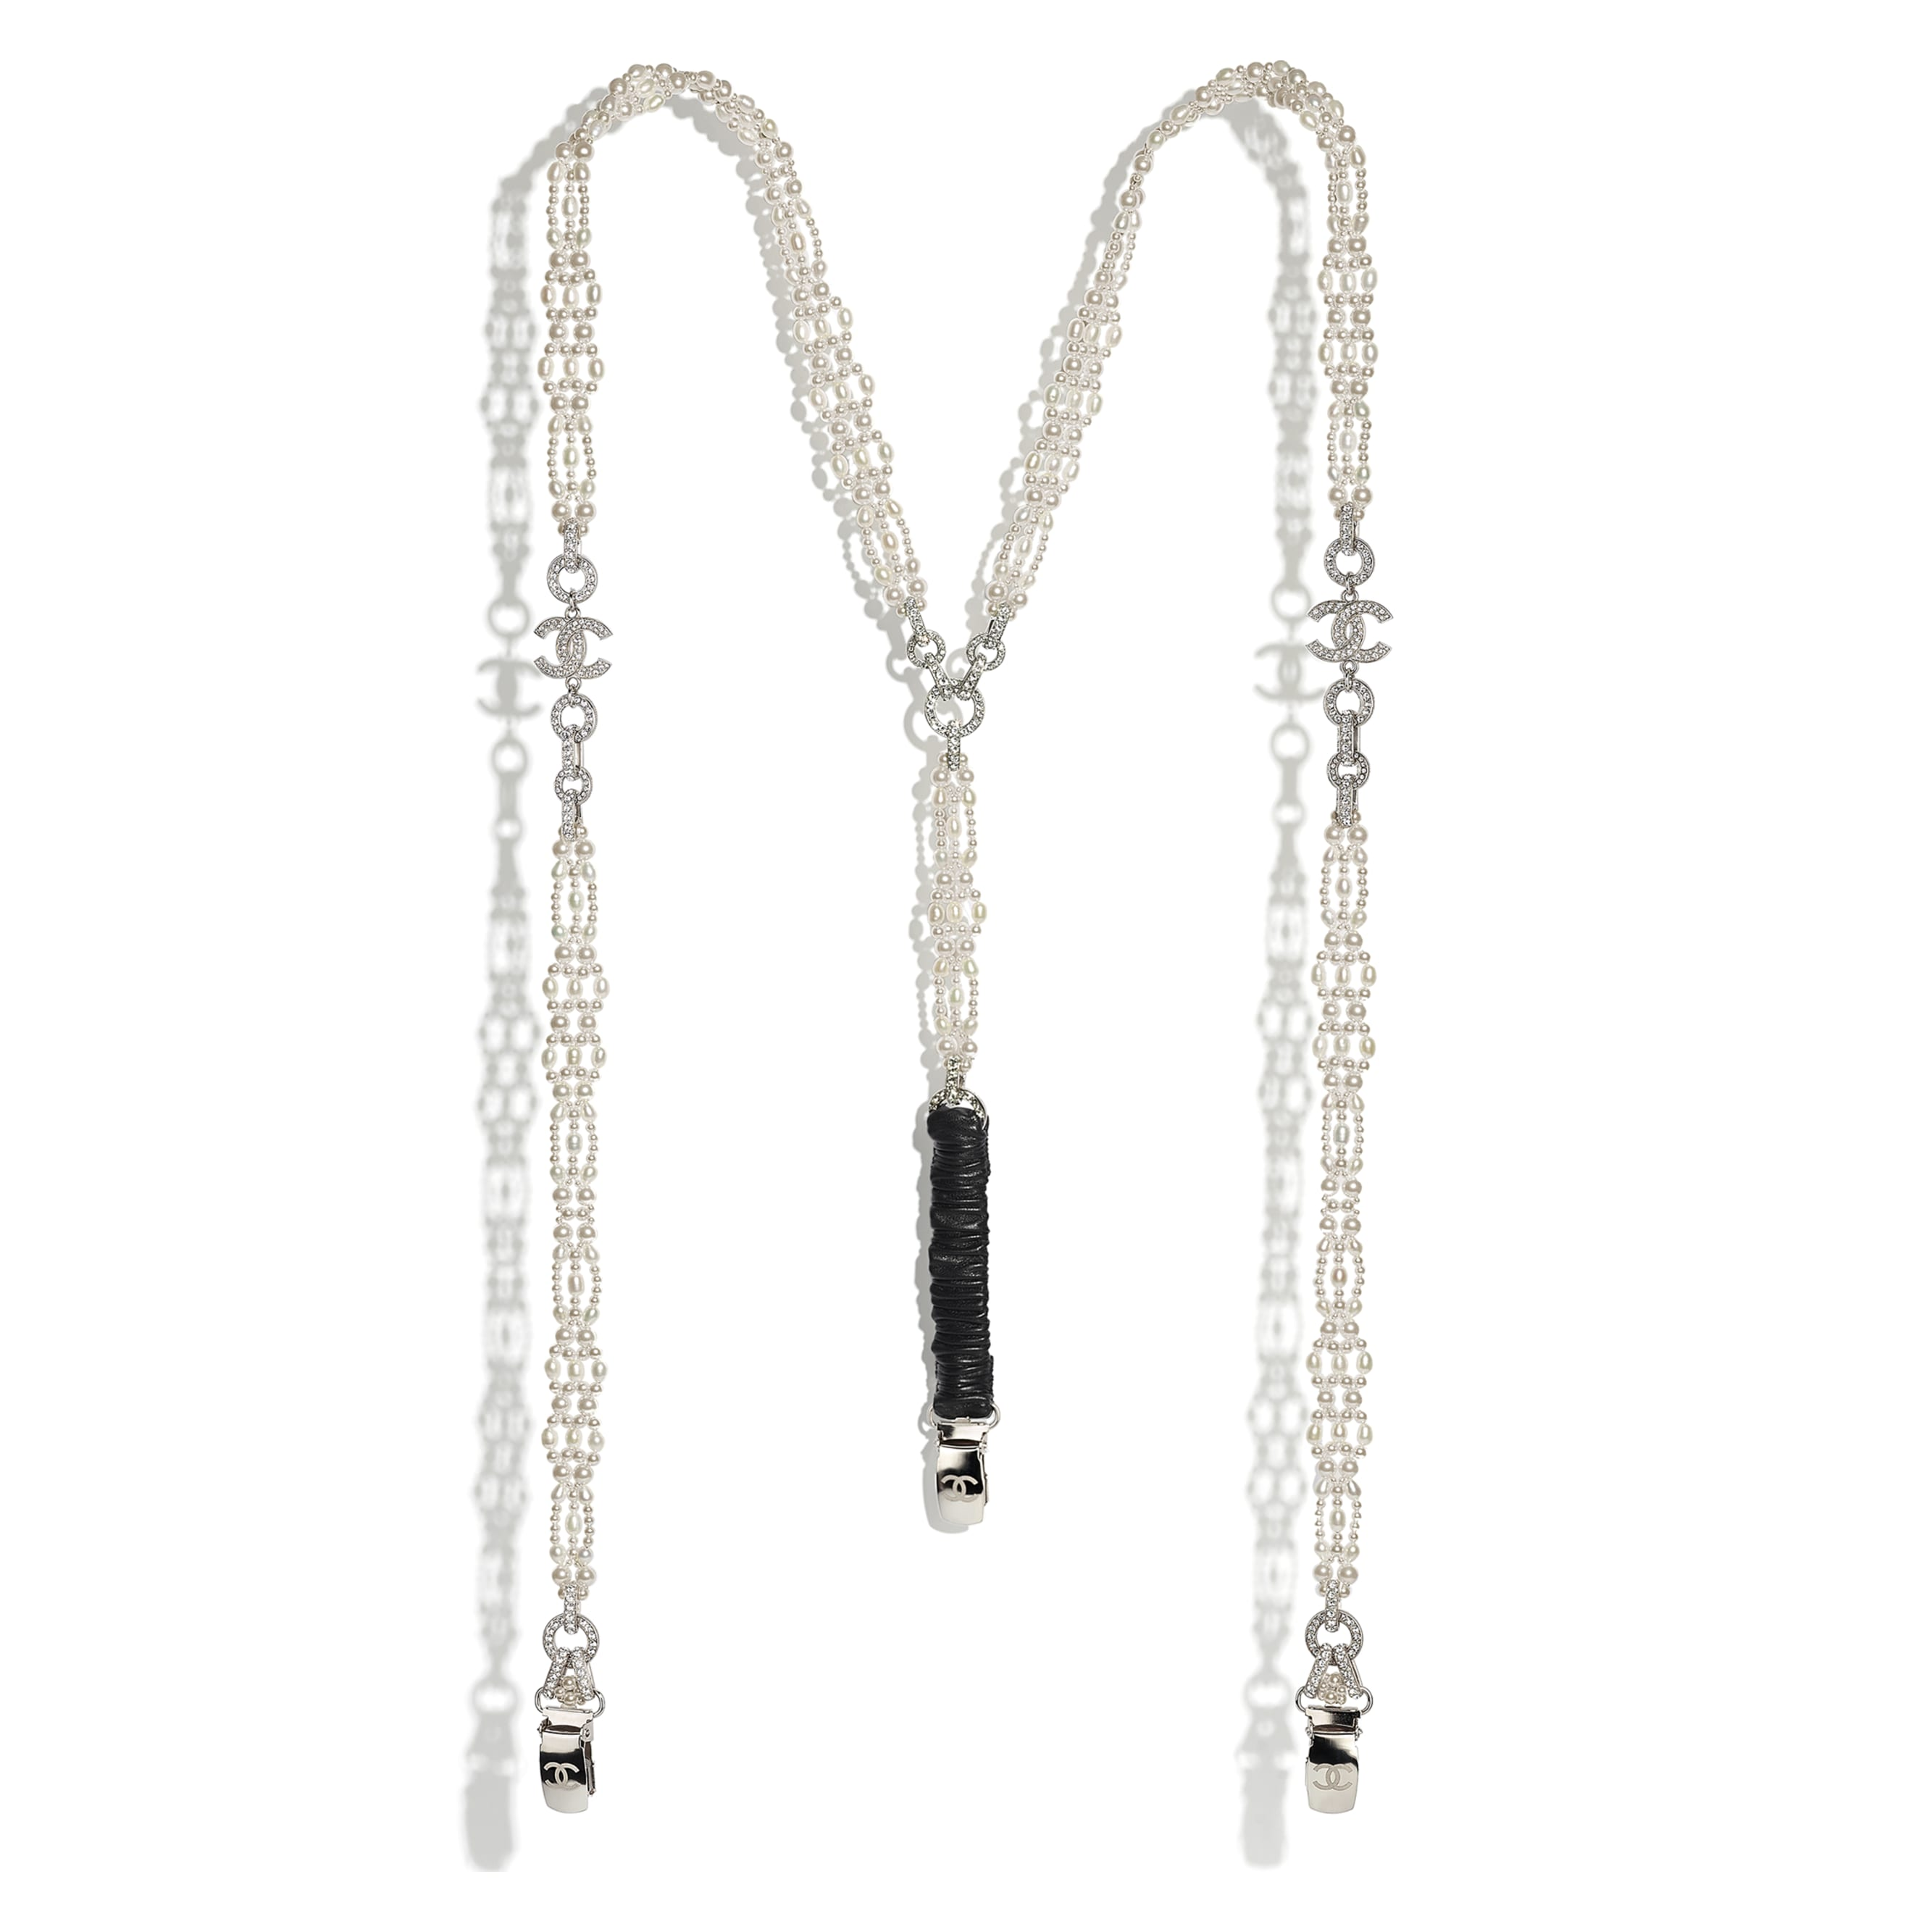 Suspenders - Silver, Pearly White, Black & Crystal - Metal, Cultured Freshwater Pearls, Glass Pearls, Lambskin & Strass - CHANEL - Default view - see standard sized version